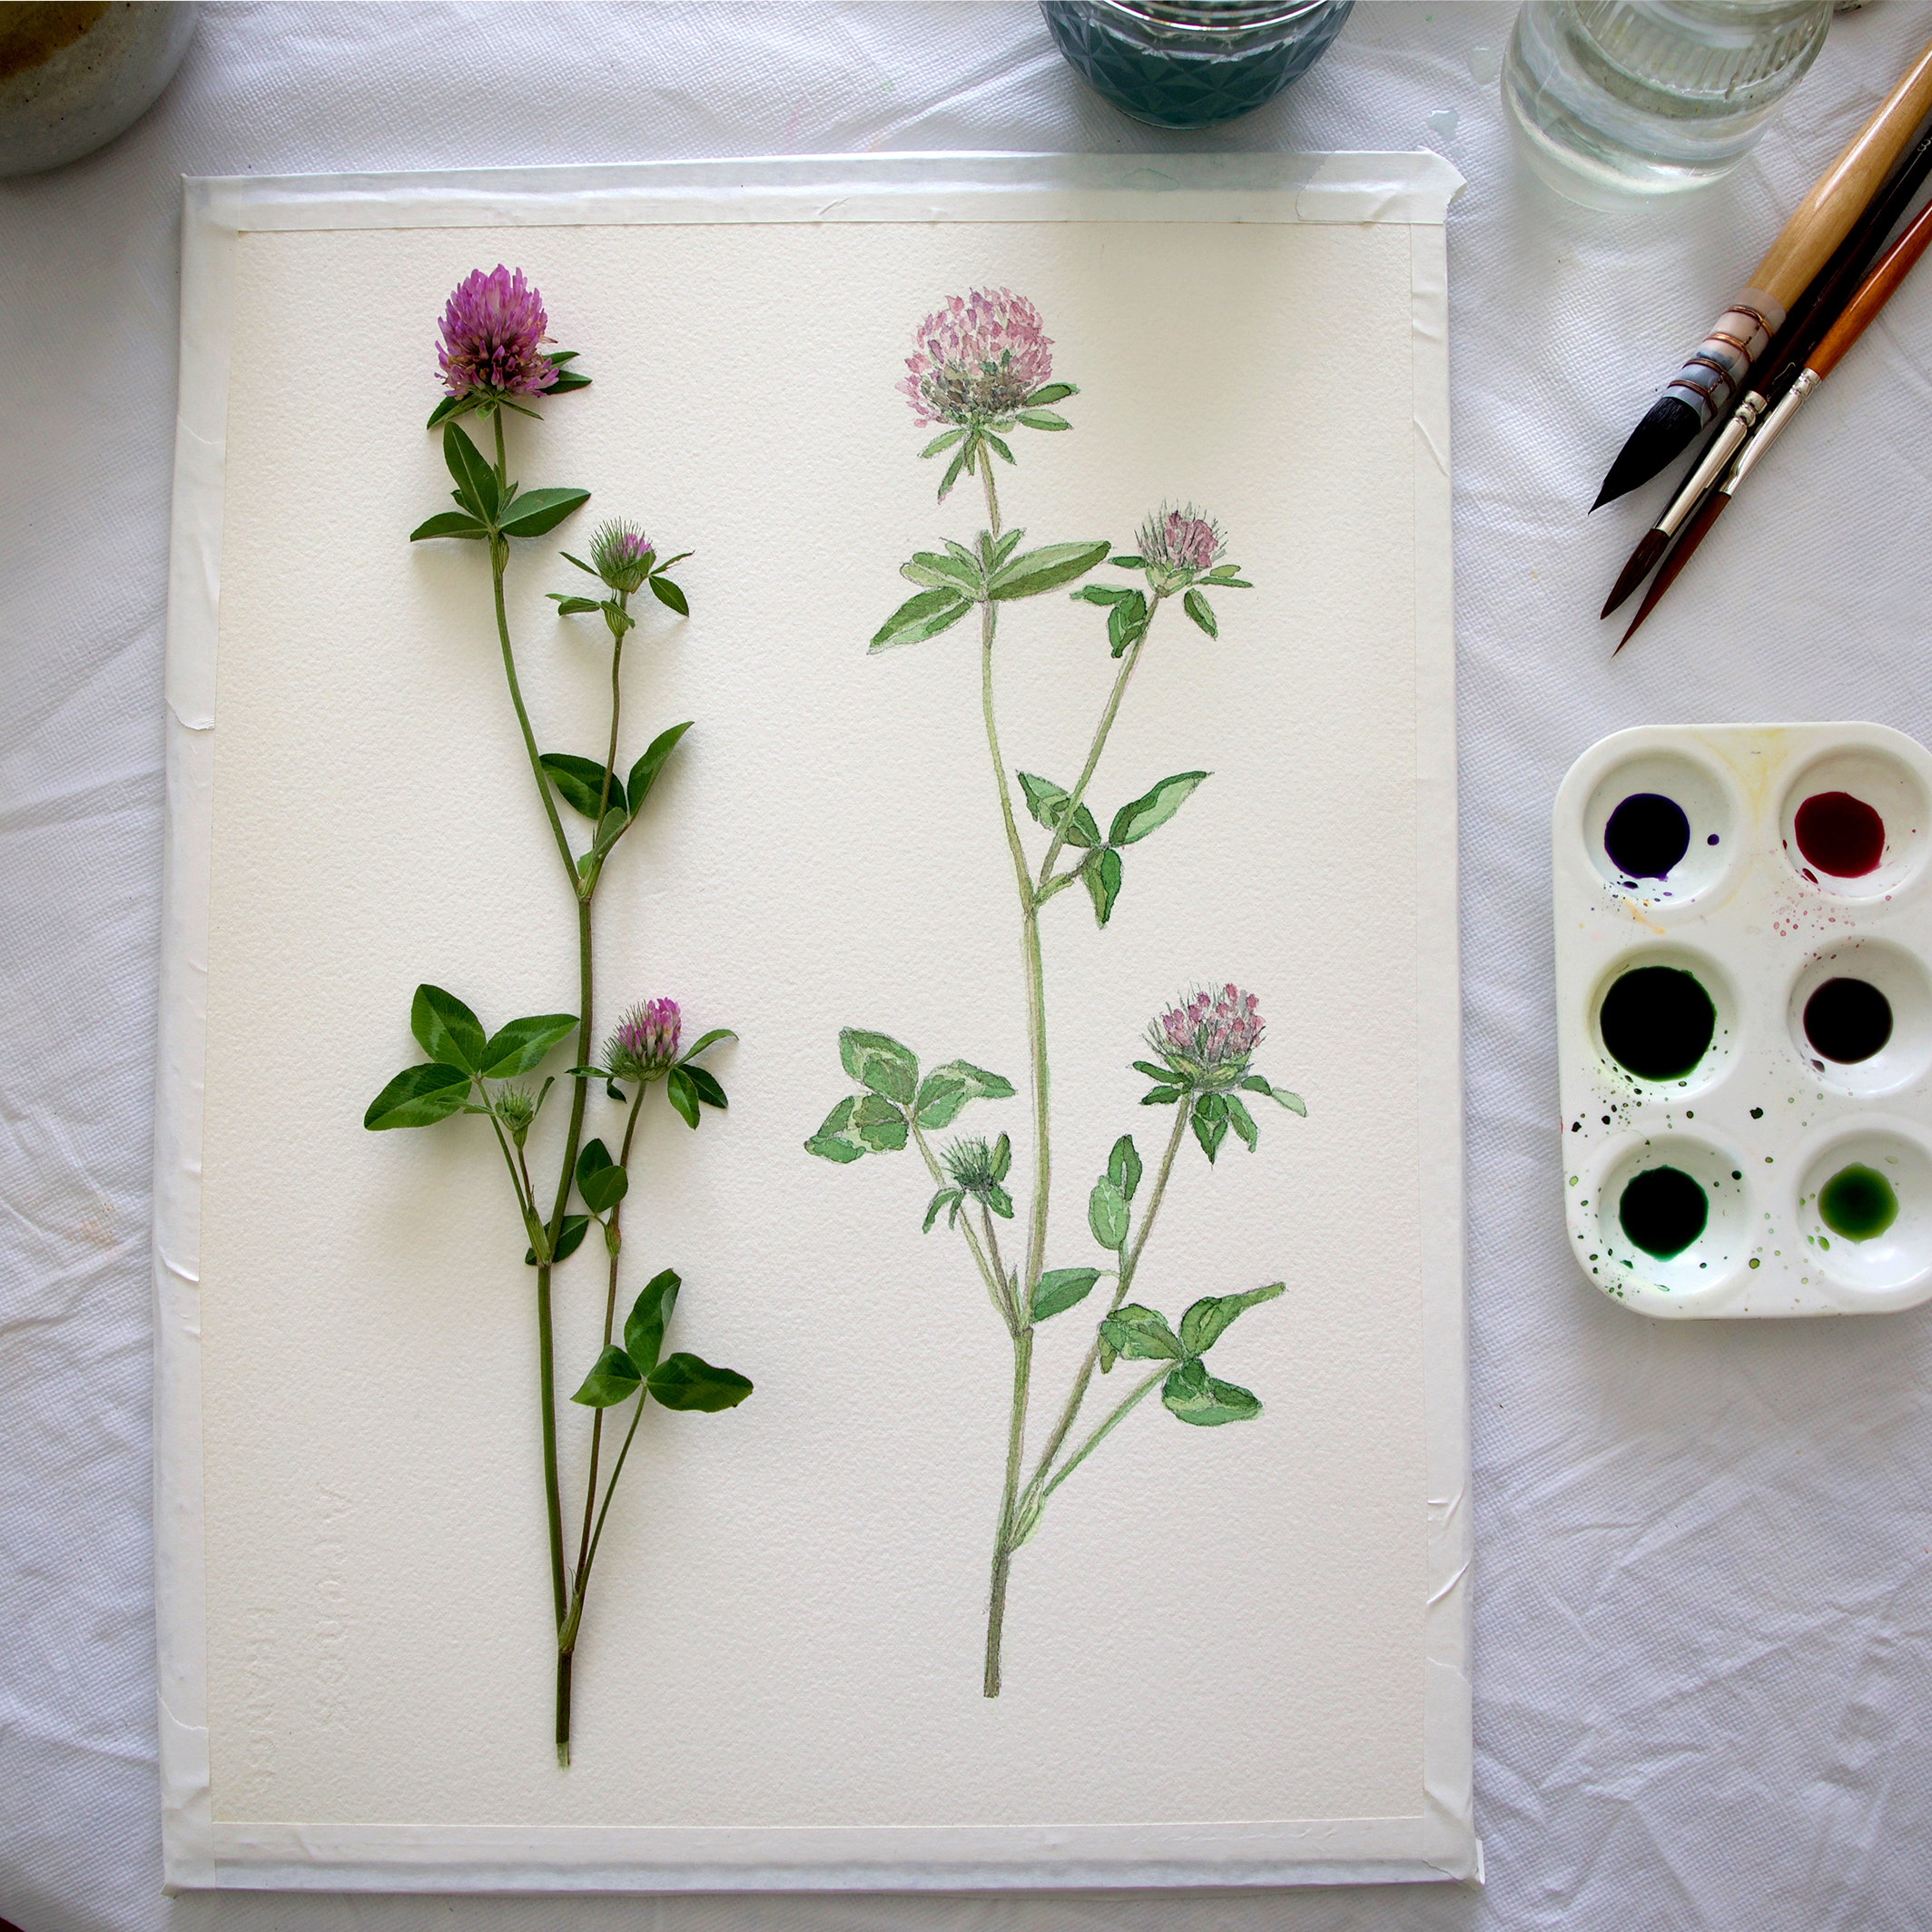 Clover Study by Sharon Holland